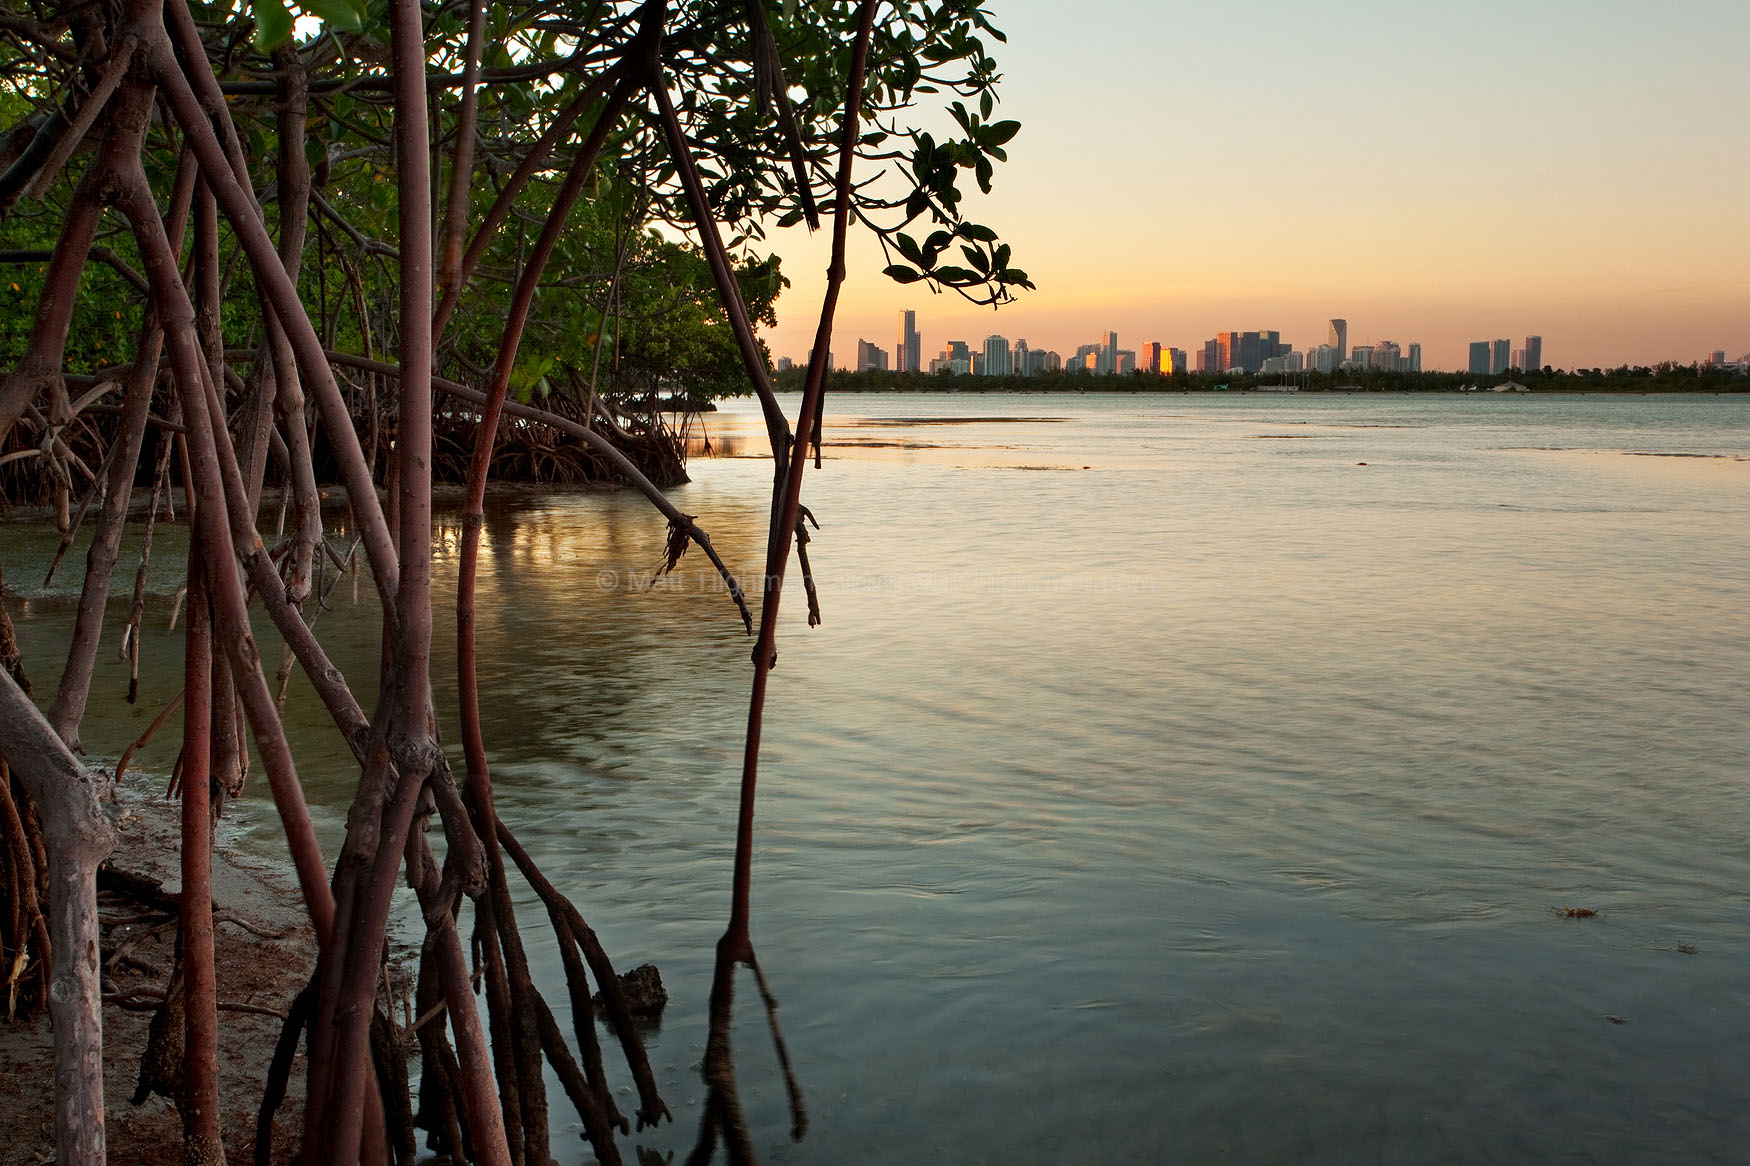 Fine art stock photograph of Miami and Biscayne Bay at sunset, framed by mangroves in Bear Cut Nature Preserve. The city is nearby much natural wilderness, if one cares to seek it out.